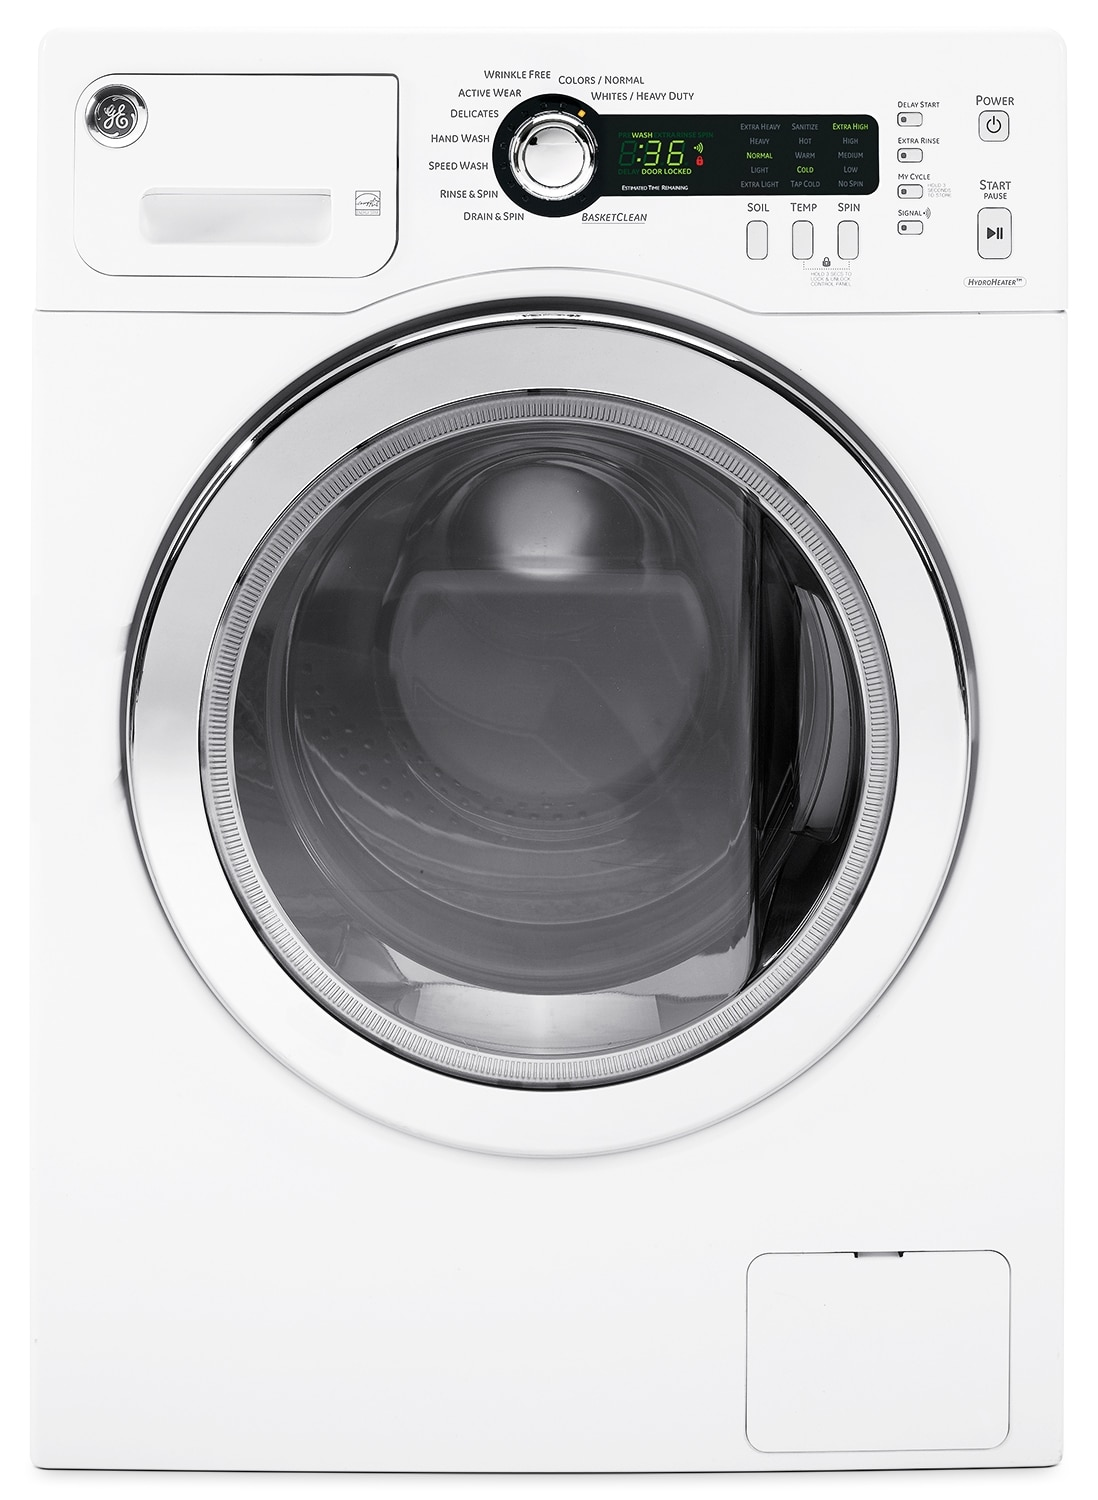 Washers and Dryers - GE White Front-Load Washer (2.6 Cu. Ft. IEC) - WCVH4800KWW